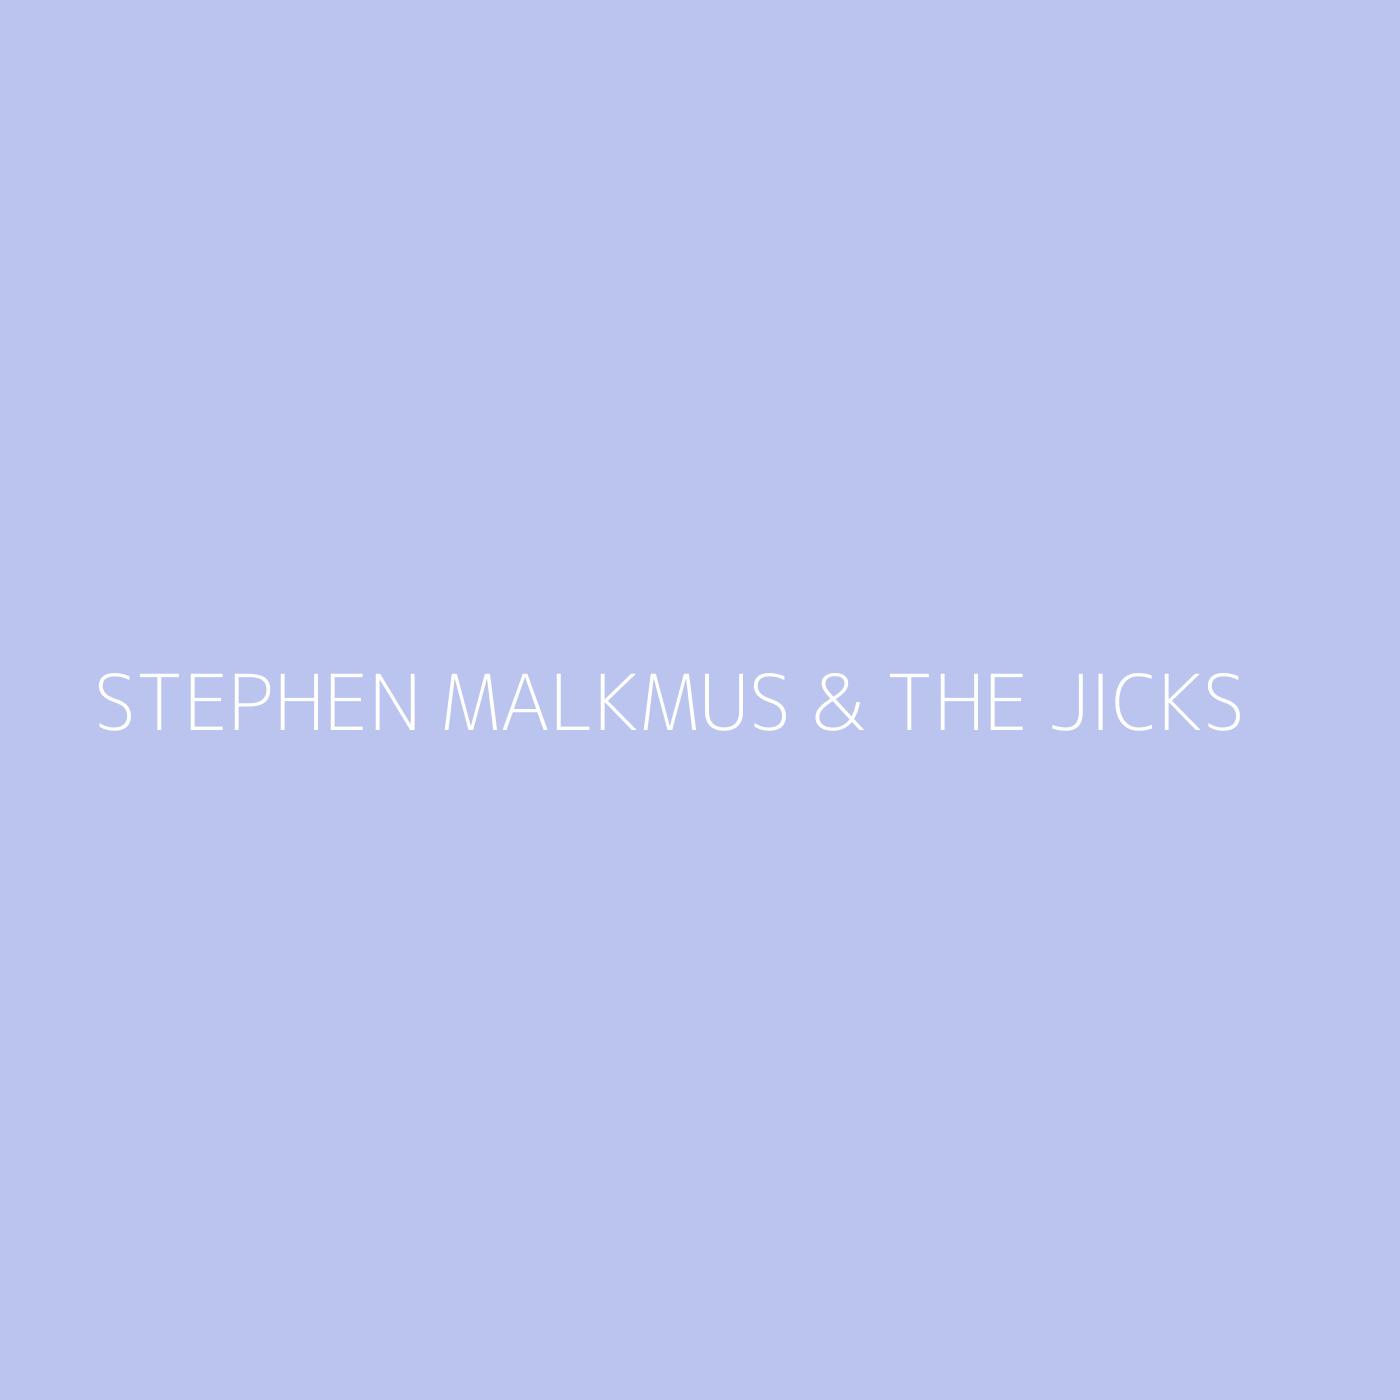 Stephen Malkmus & The Jicks Playlist Artwork